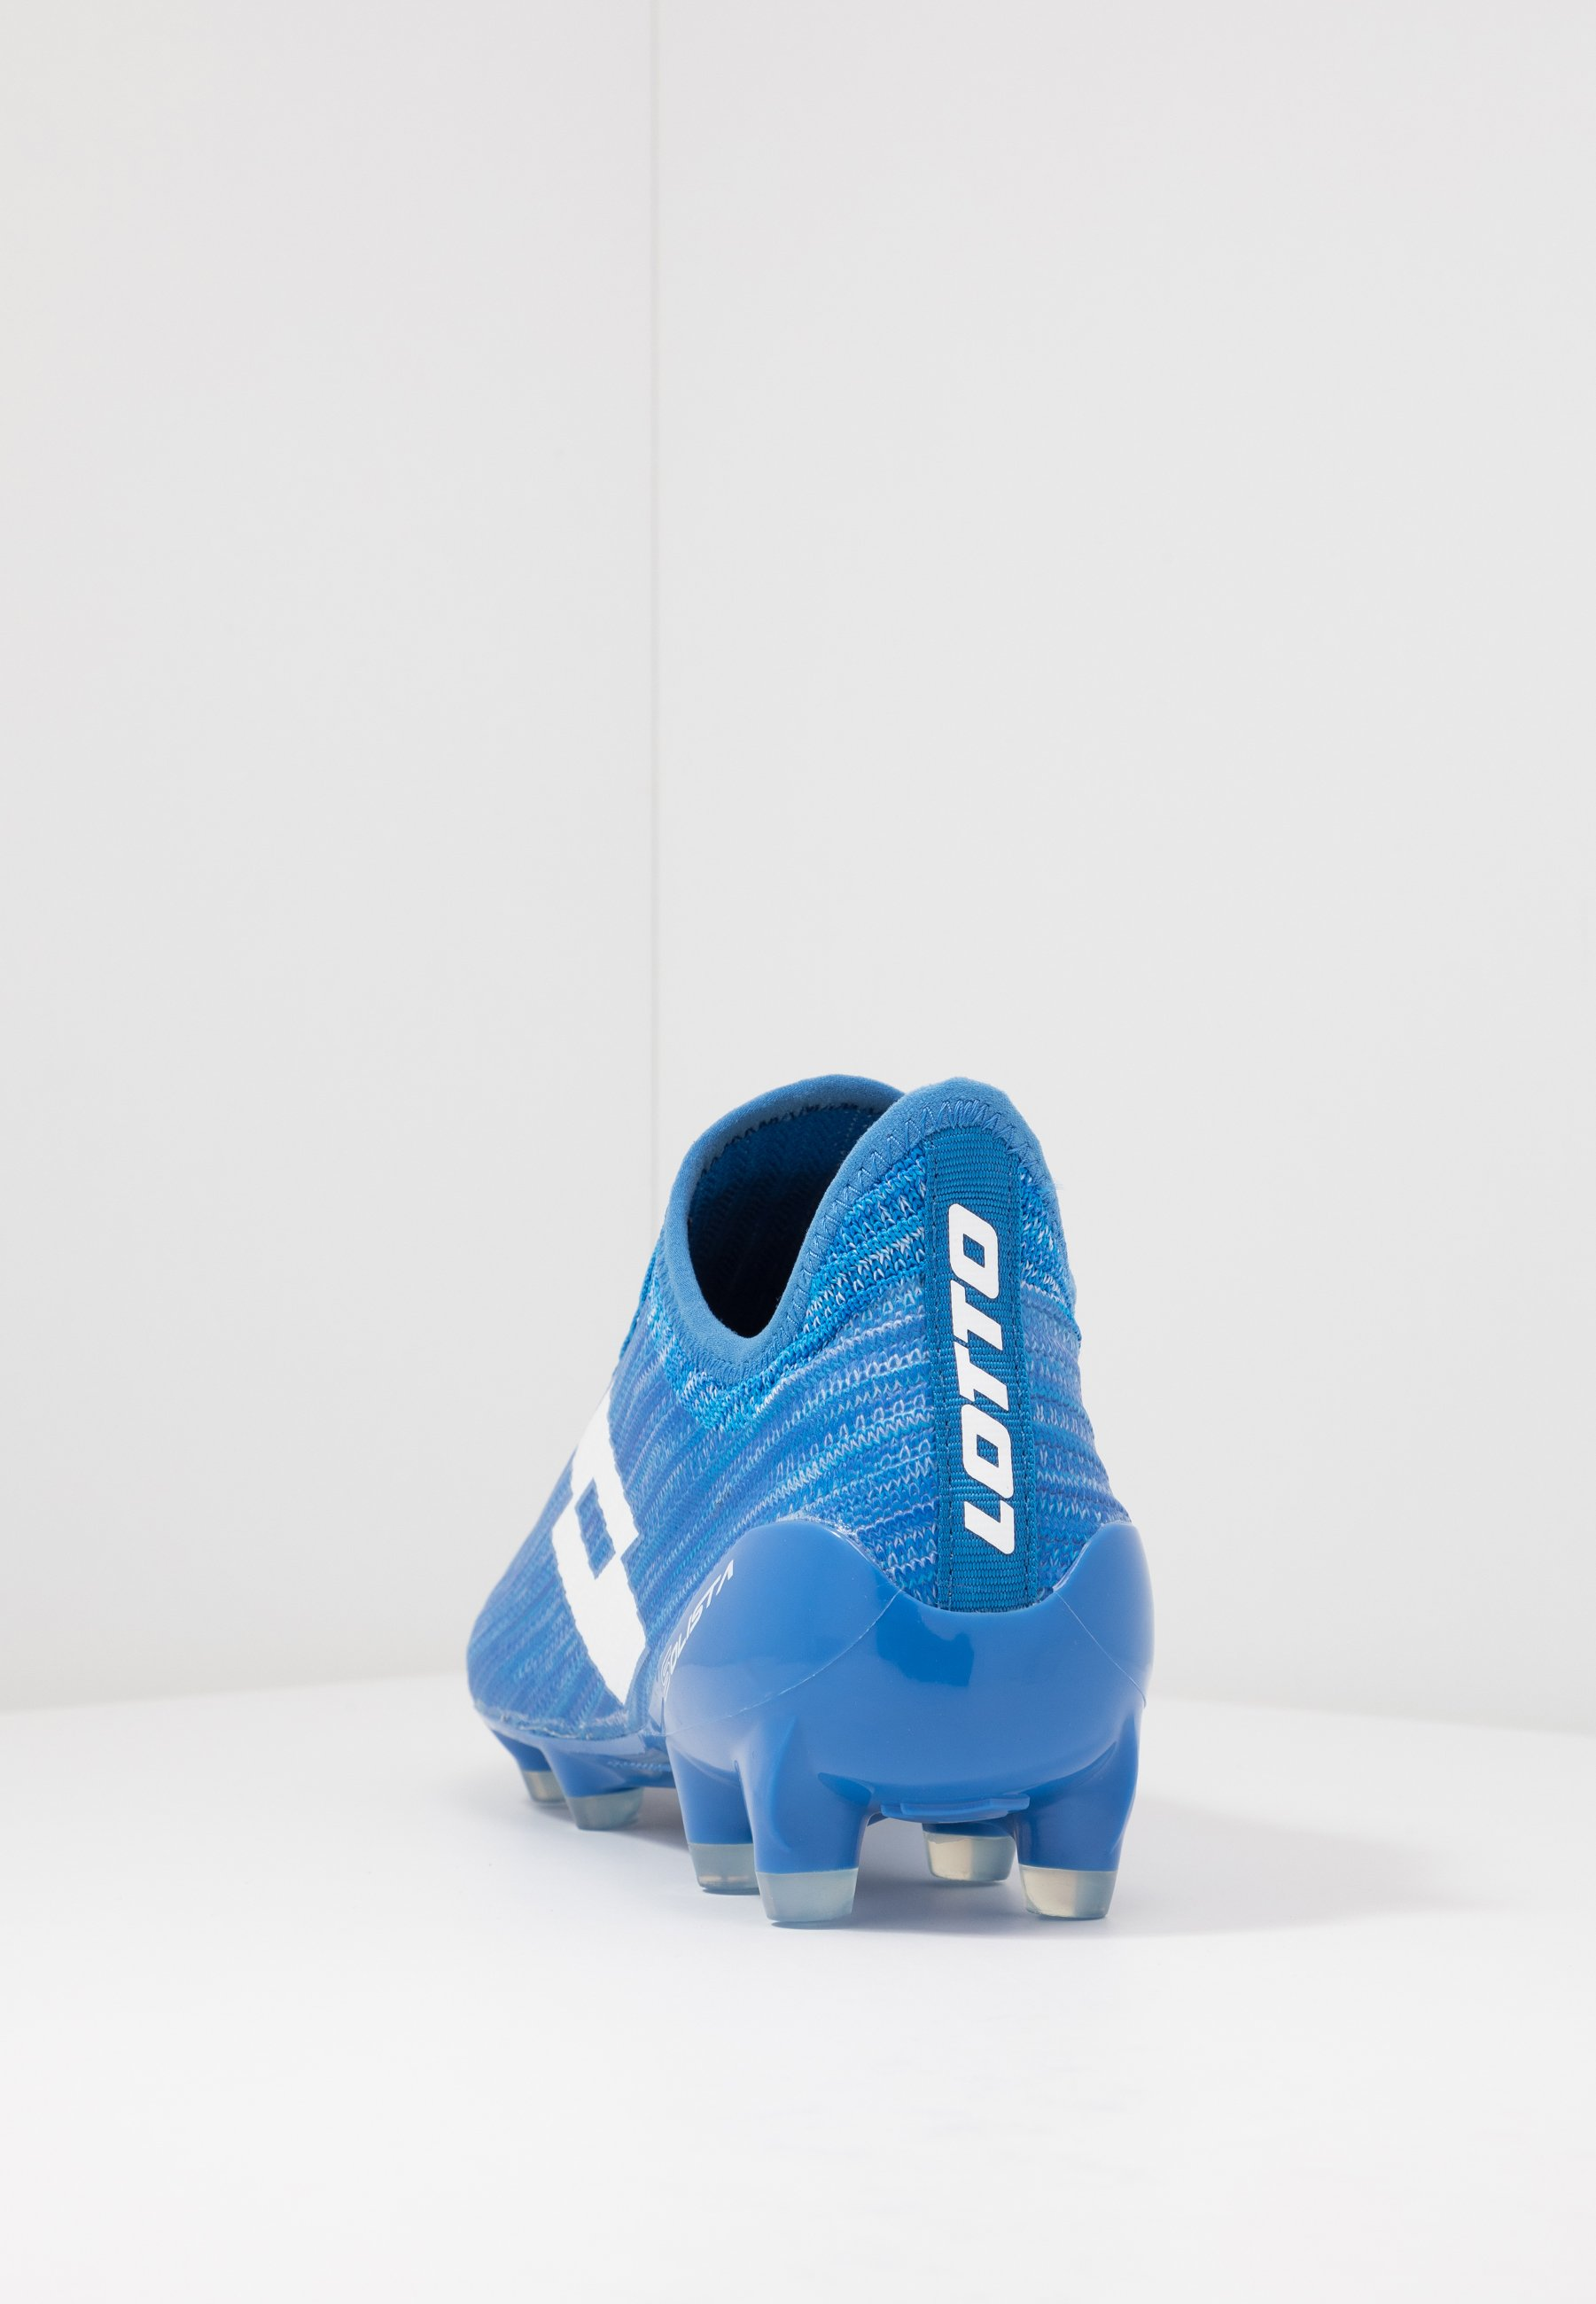 Lotto SOLISTA 200 III FG - Chaussures de foot à crampons - diva blue/all white/skydiver blue